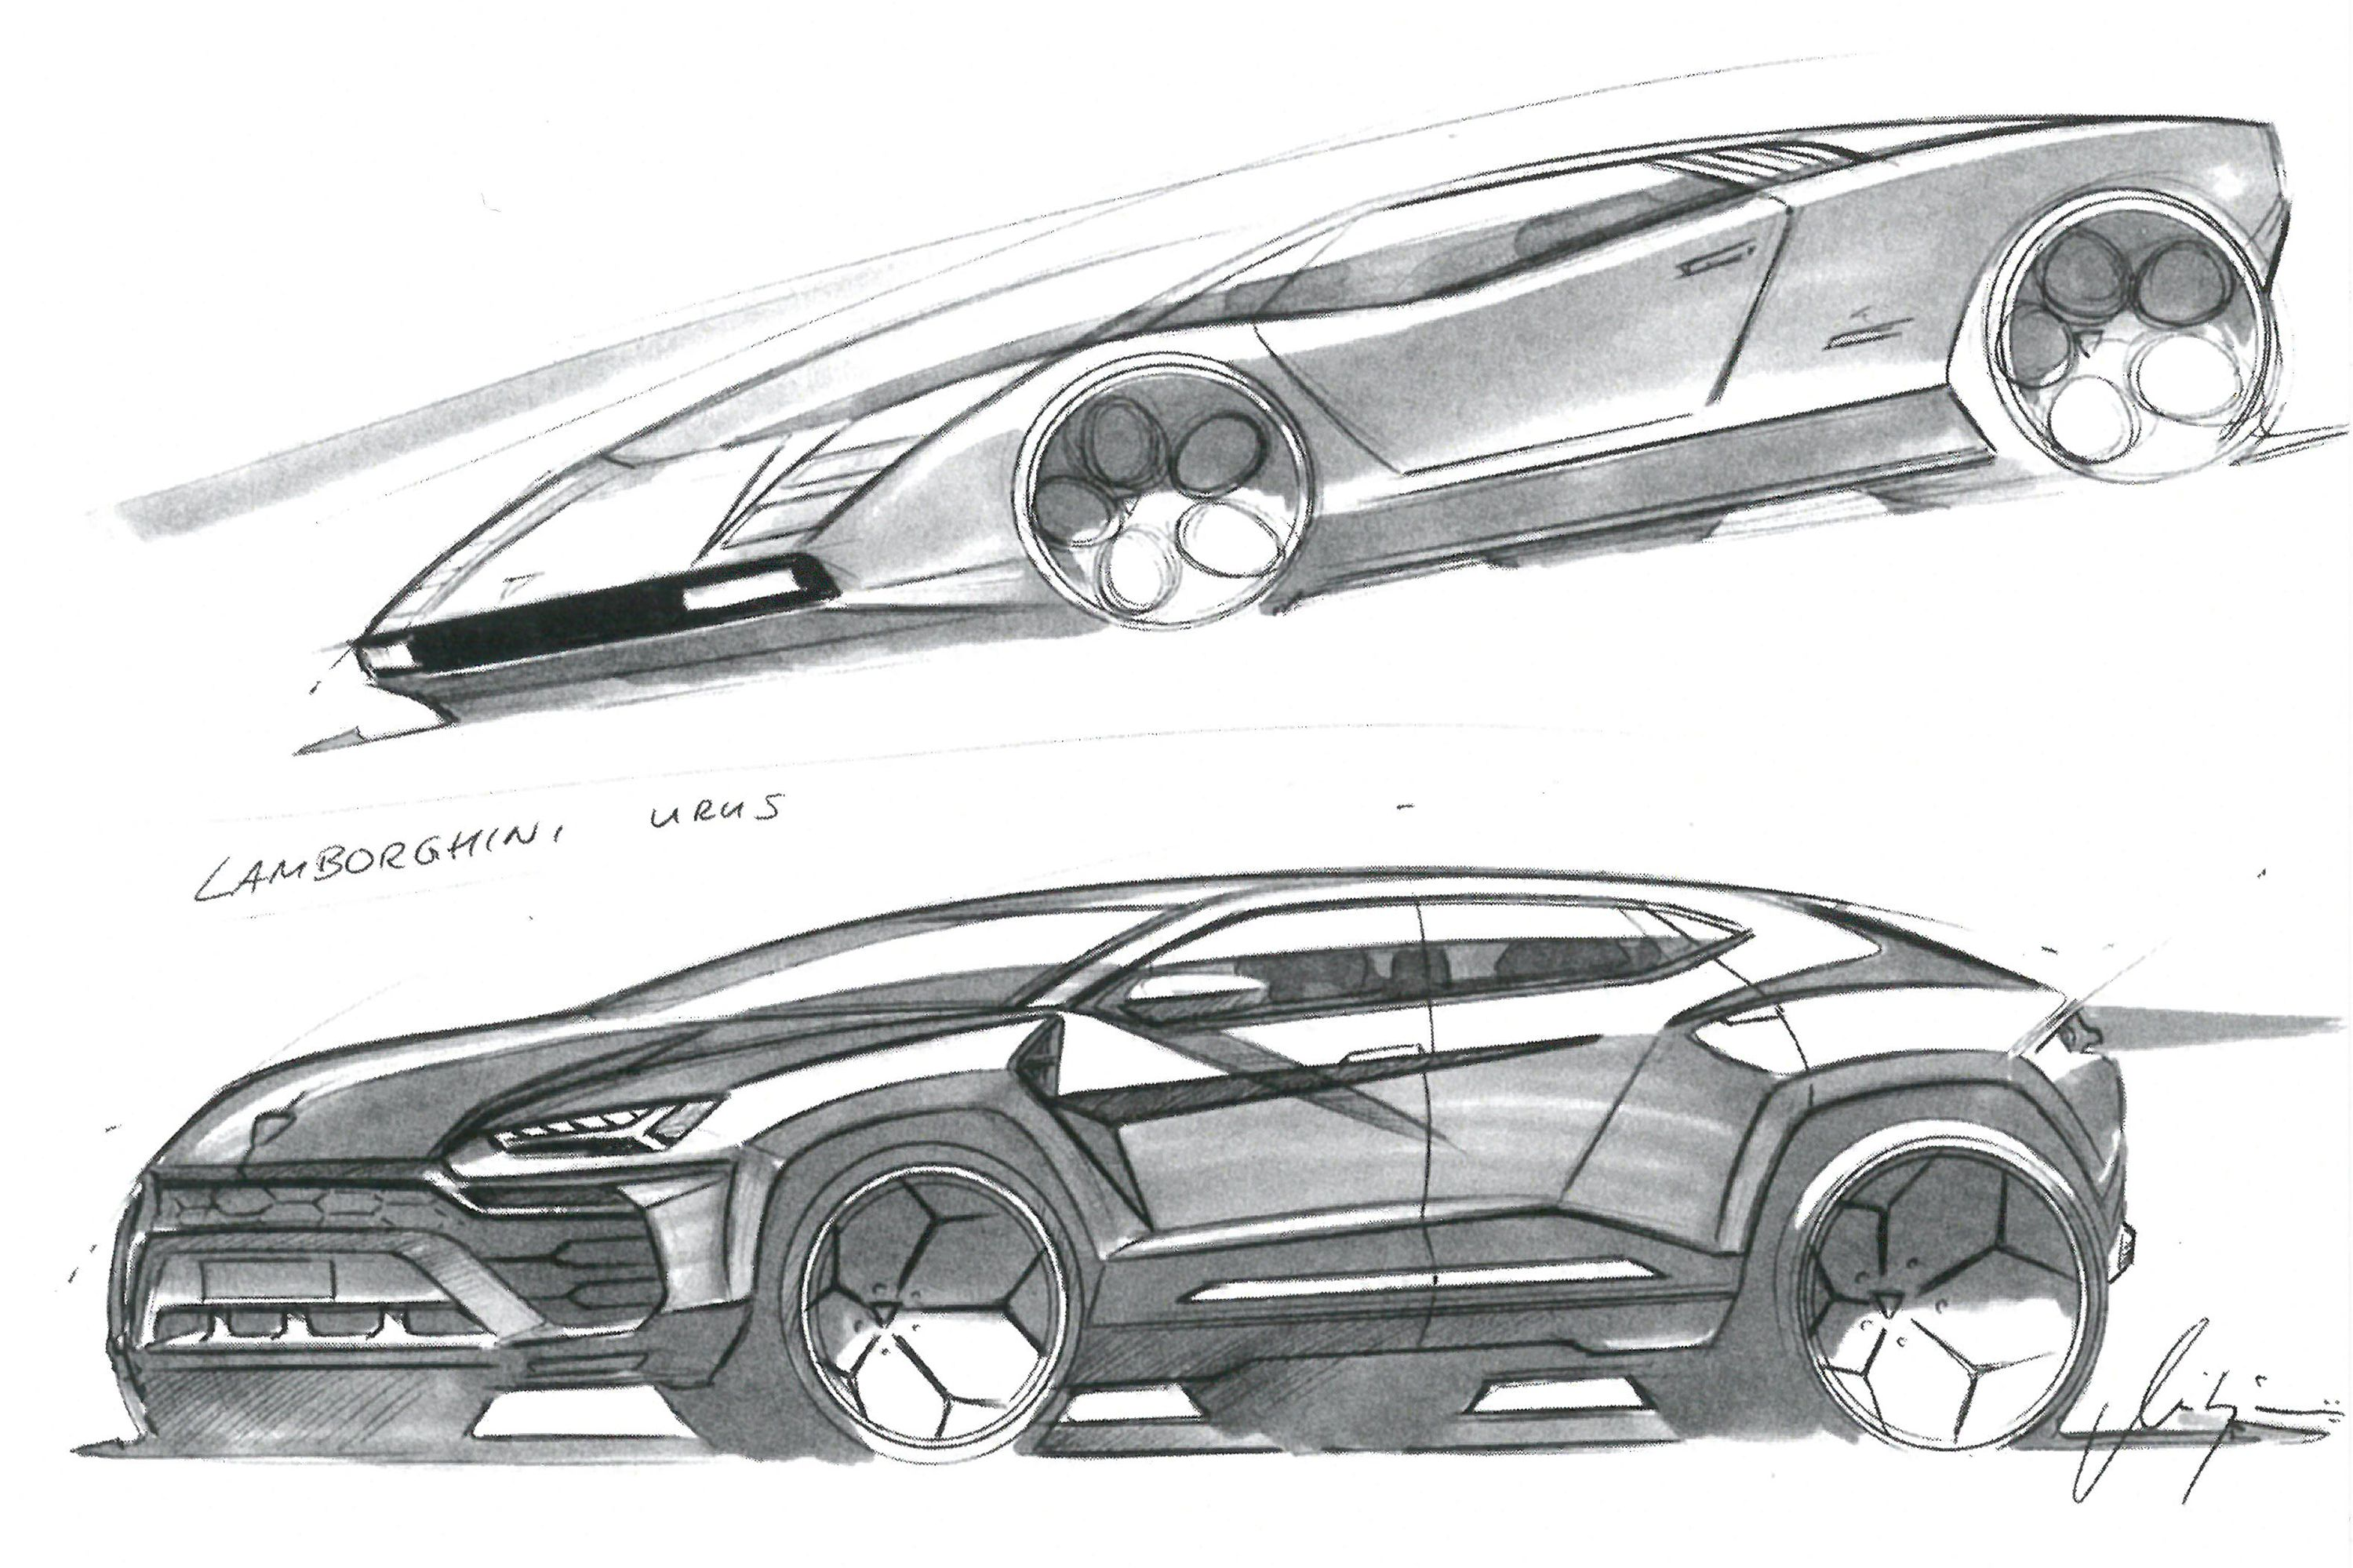 how to make an suv look like a lamborghinione of borkert\u0027s sketches which features a countach, based on marcello gandini\u0027s 1971 prototype, and the urus lamborghini